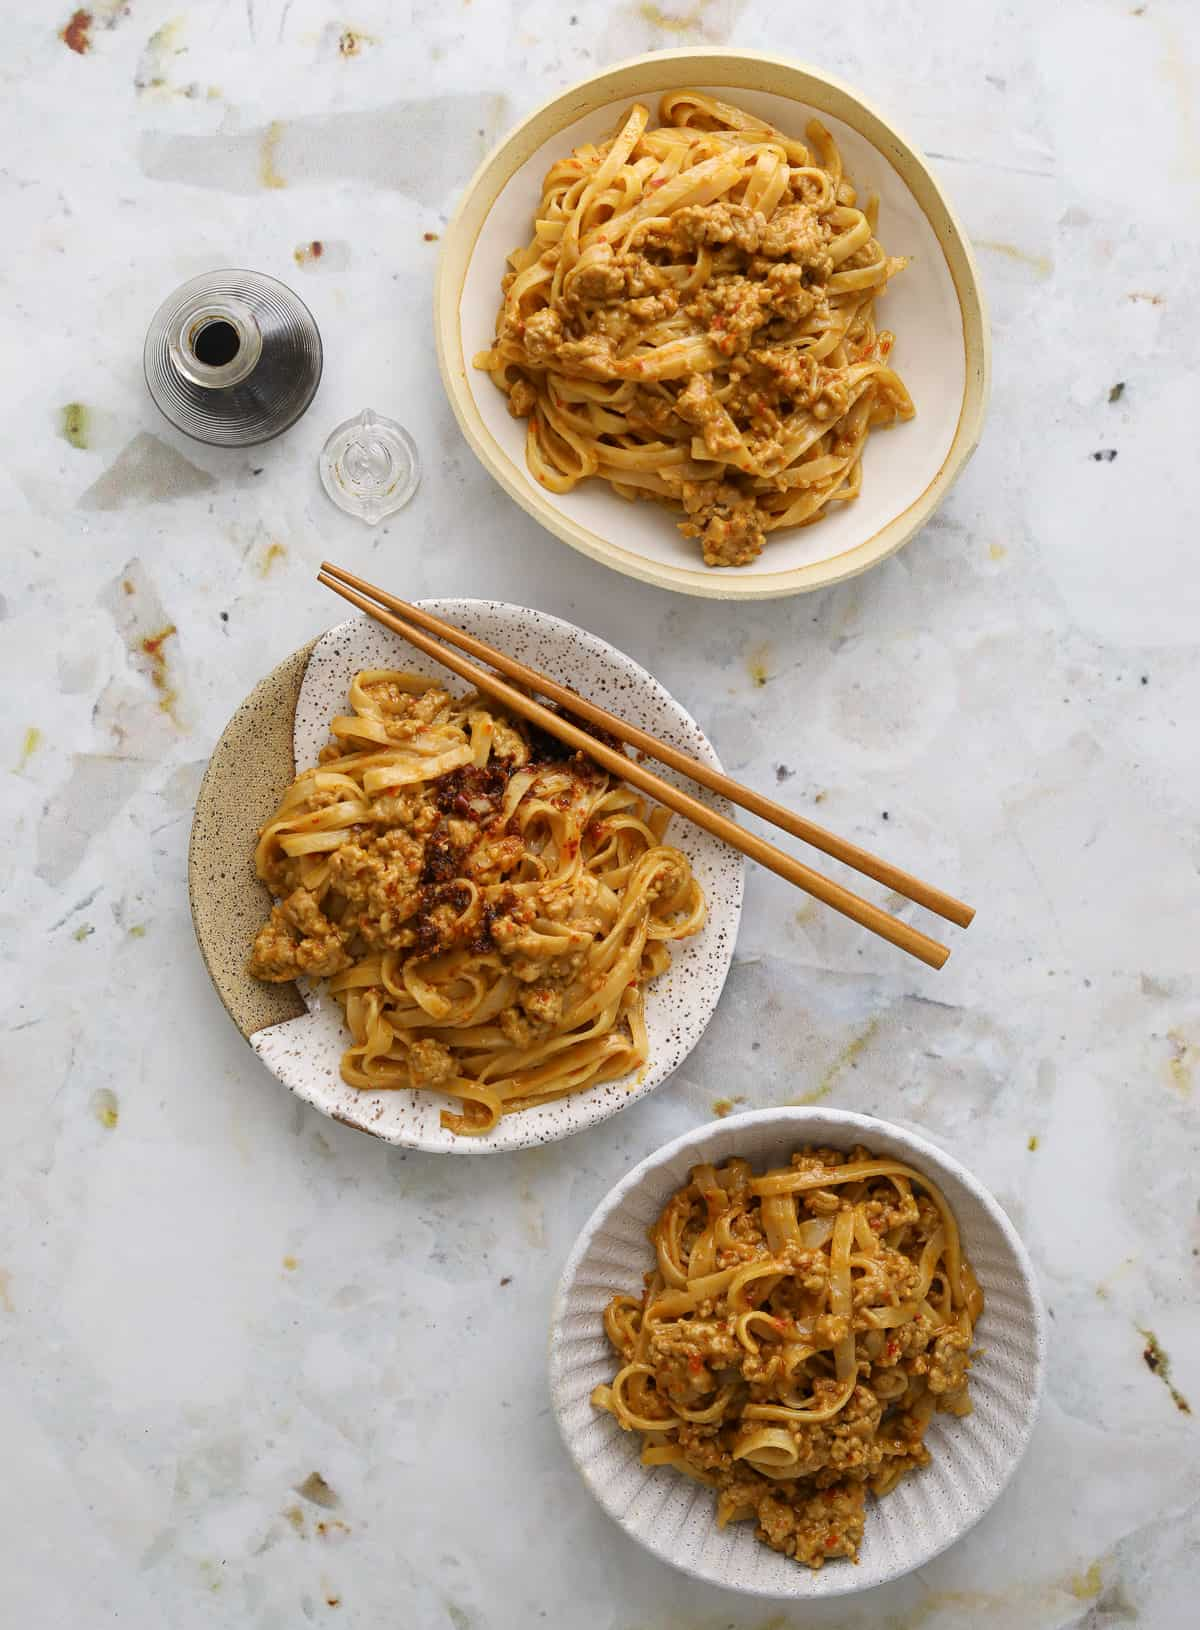 three bowls of spicy pork and peanut noodles with chop sticks and a small bottle of soy sauce